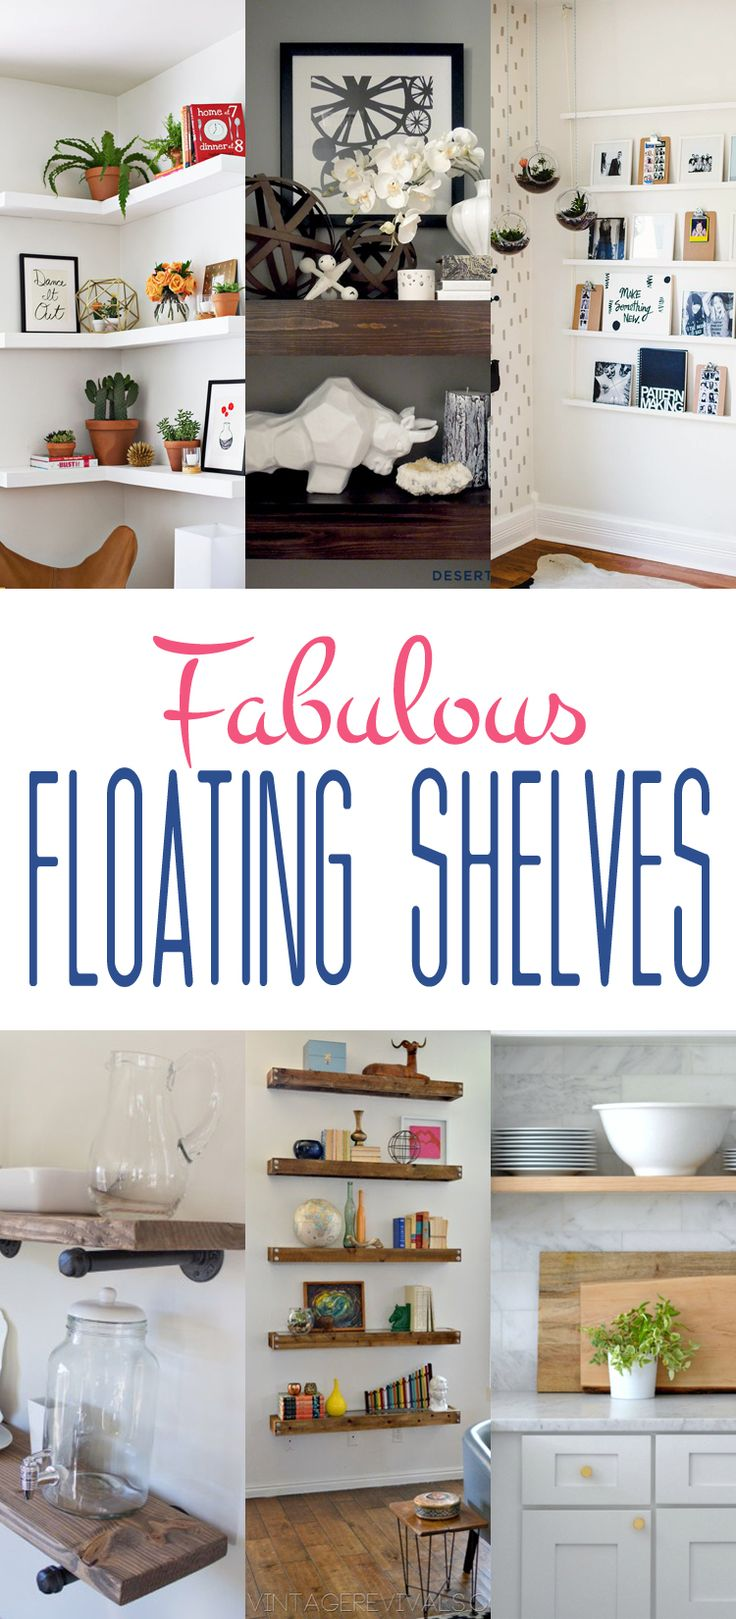 If you love Floating Shelves...then you are going to love these Fabulous Floating Shelves and they all come with a DIY so you can recreate them!!!